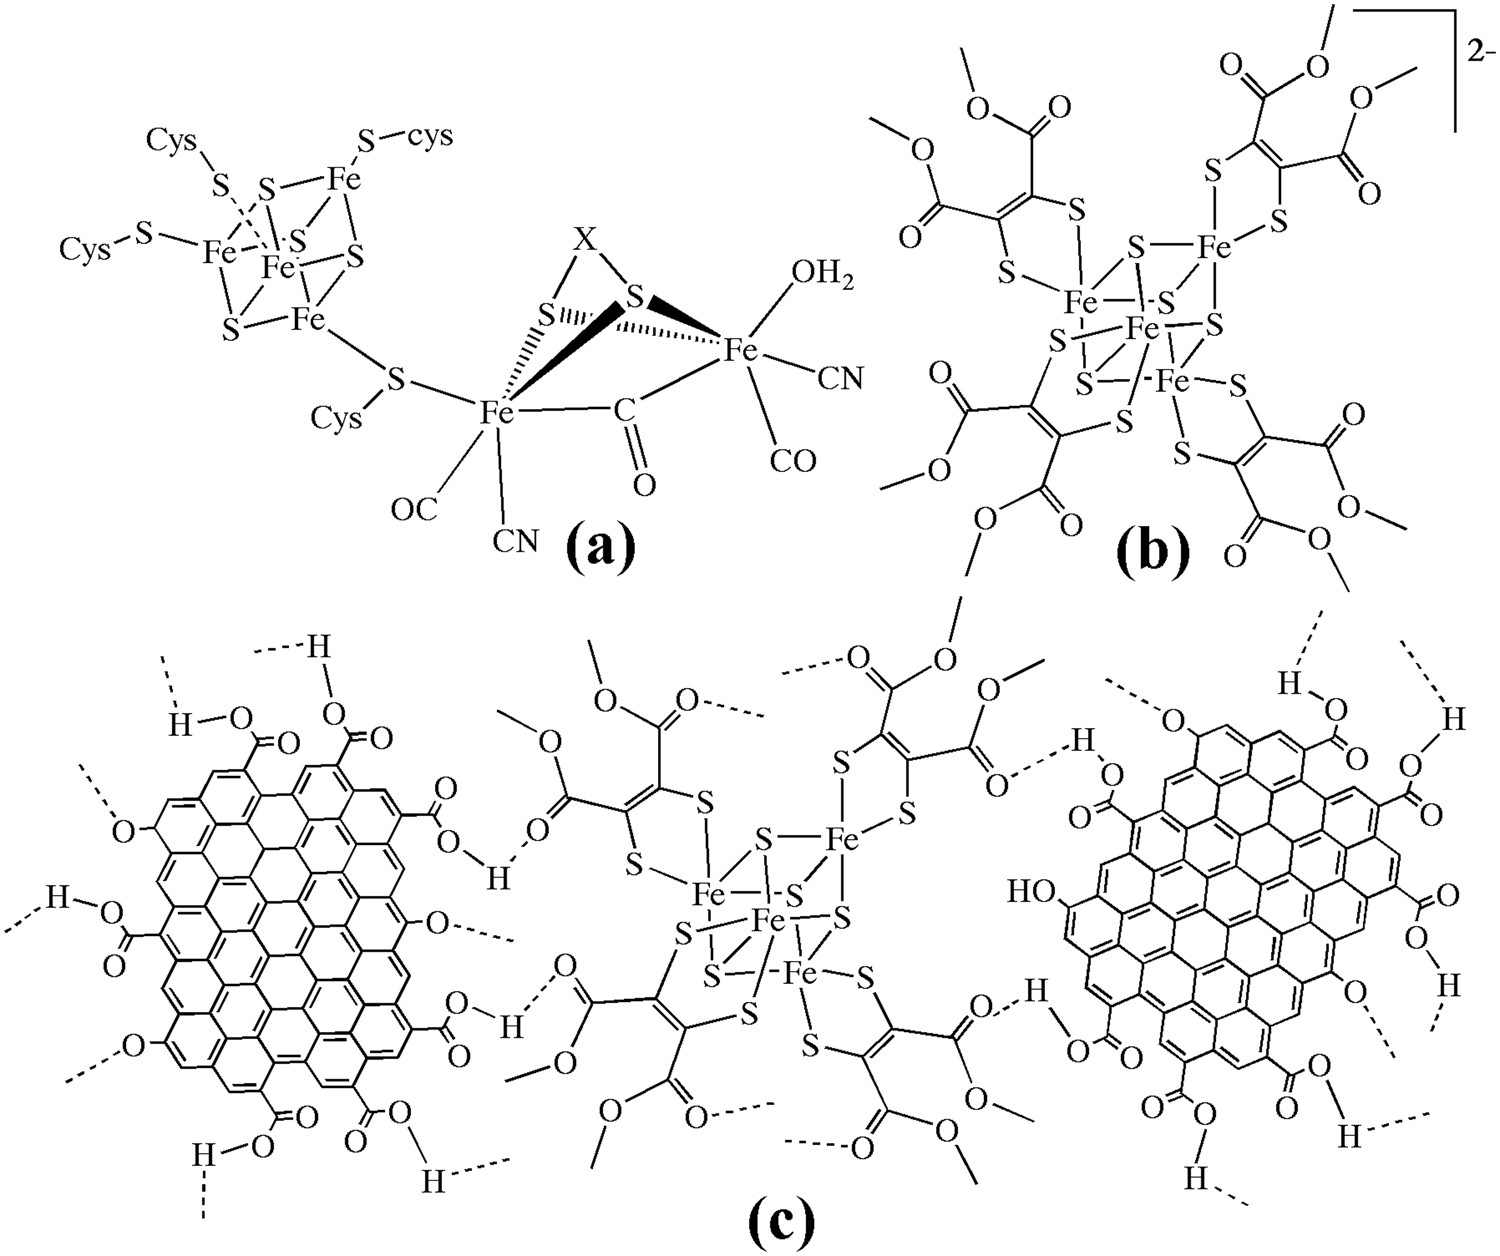 Fe 4 S Cubane Type Cluster Immobilized On A Graphene Support M997 Wiring Diagram High Performance H 2 Evolution Catalysis In Acidic Water Scientific Reports